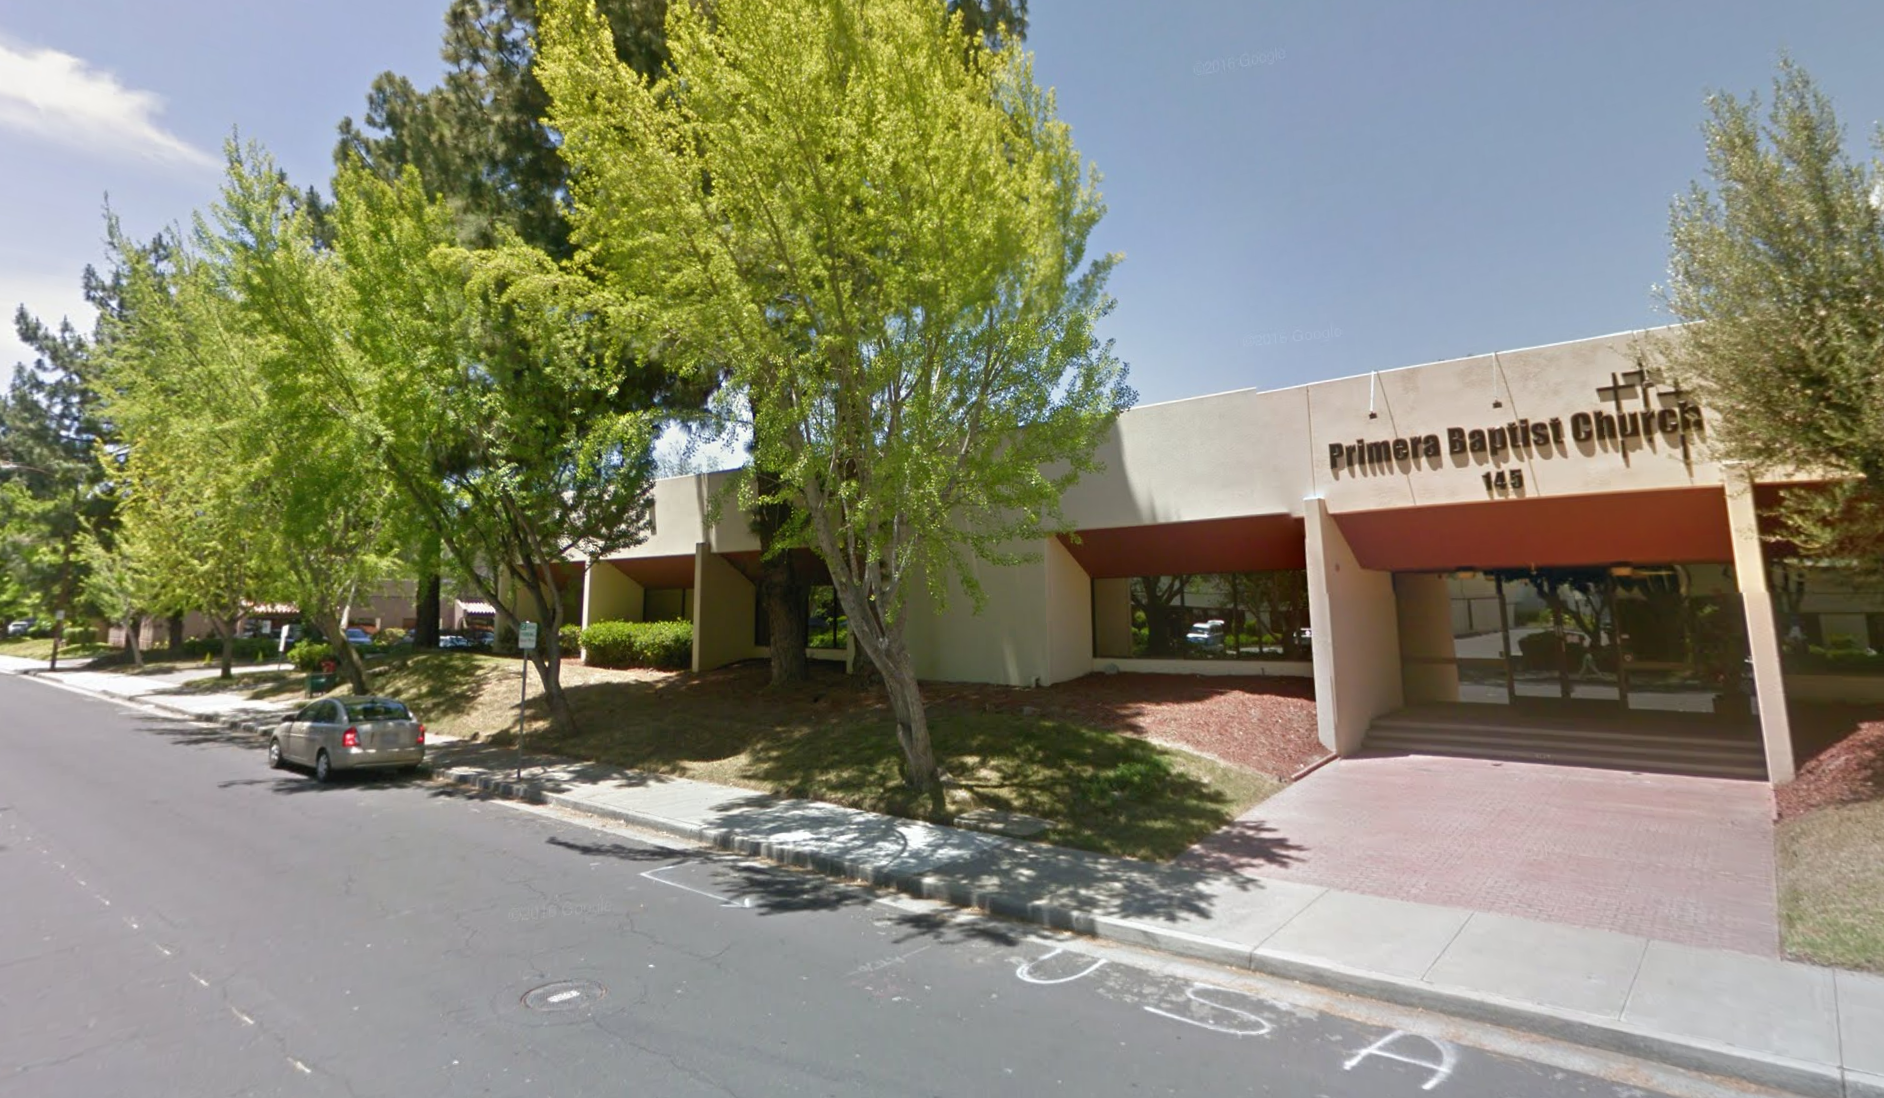 We are located near the Santa Teresa DMV